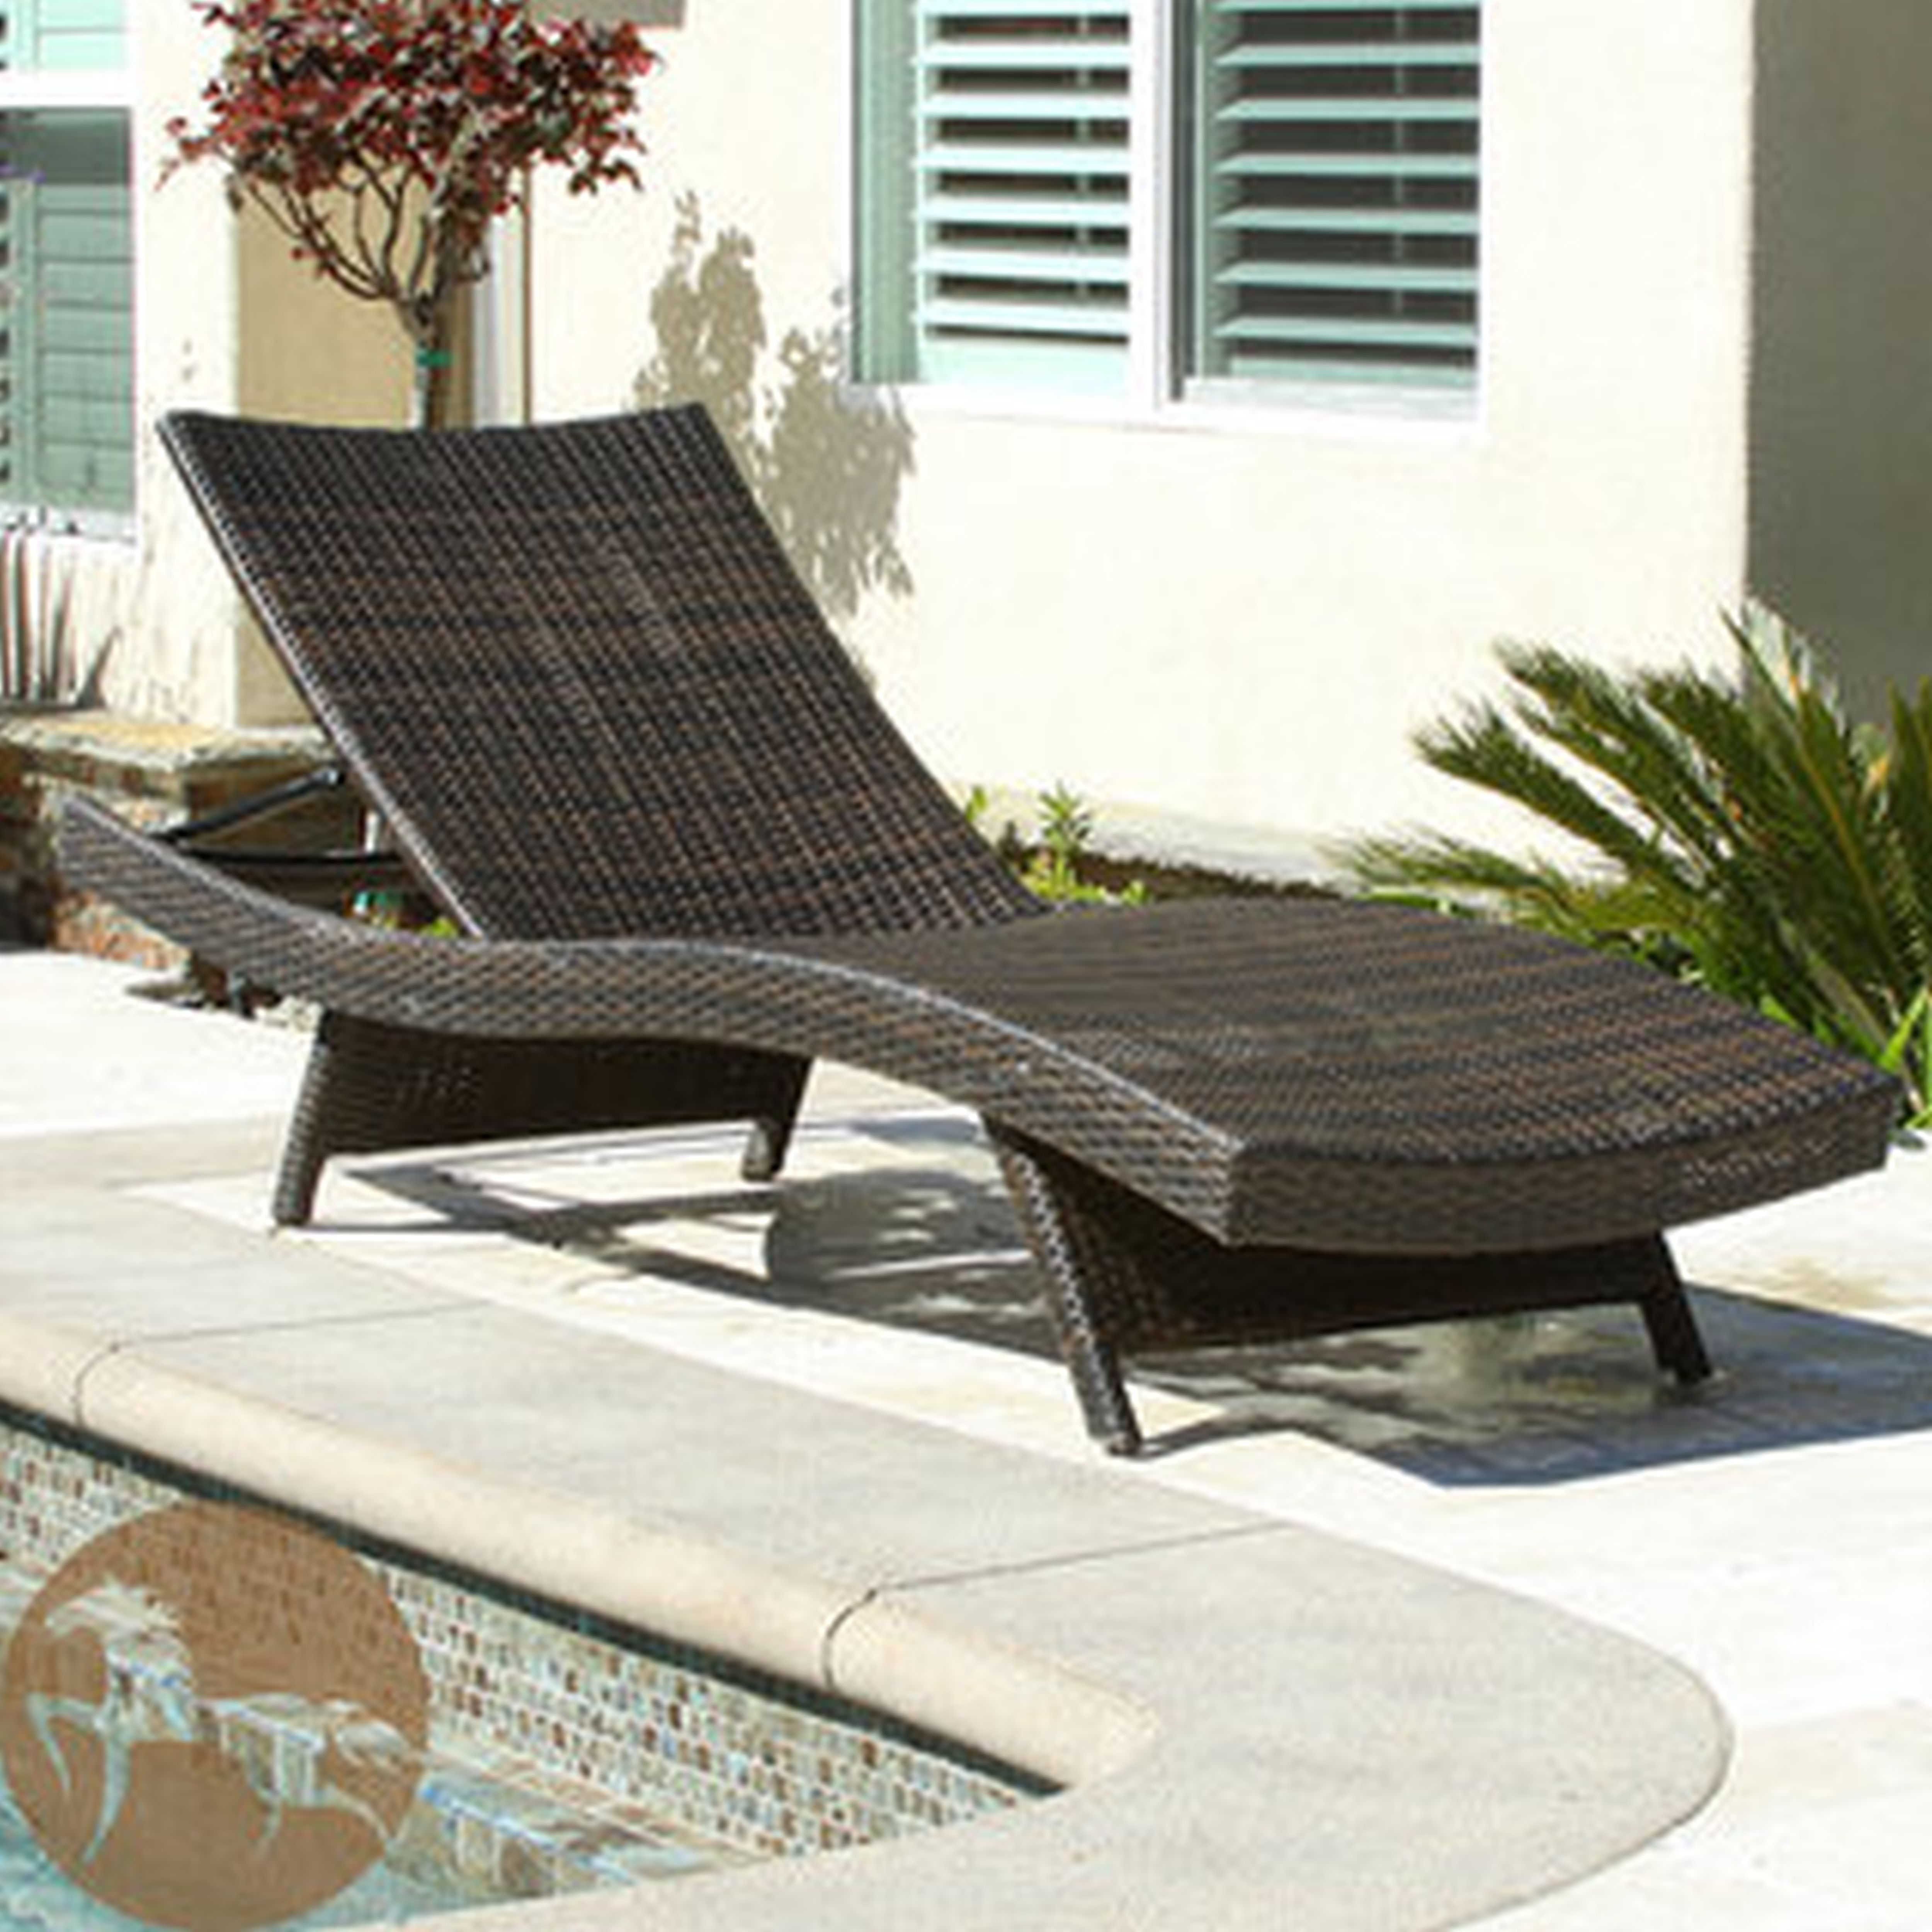 Outdoor : Chaise Lounge Sofa Lowes Patio Furniture Clearance Inside Latest Walmart Chaise Lounge Chairs (View 7 of 15)